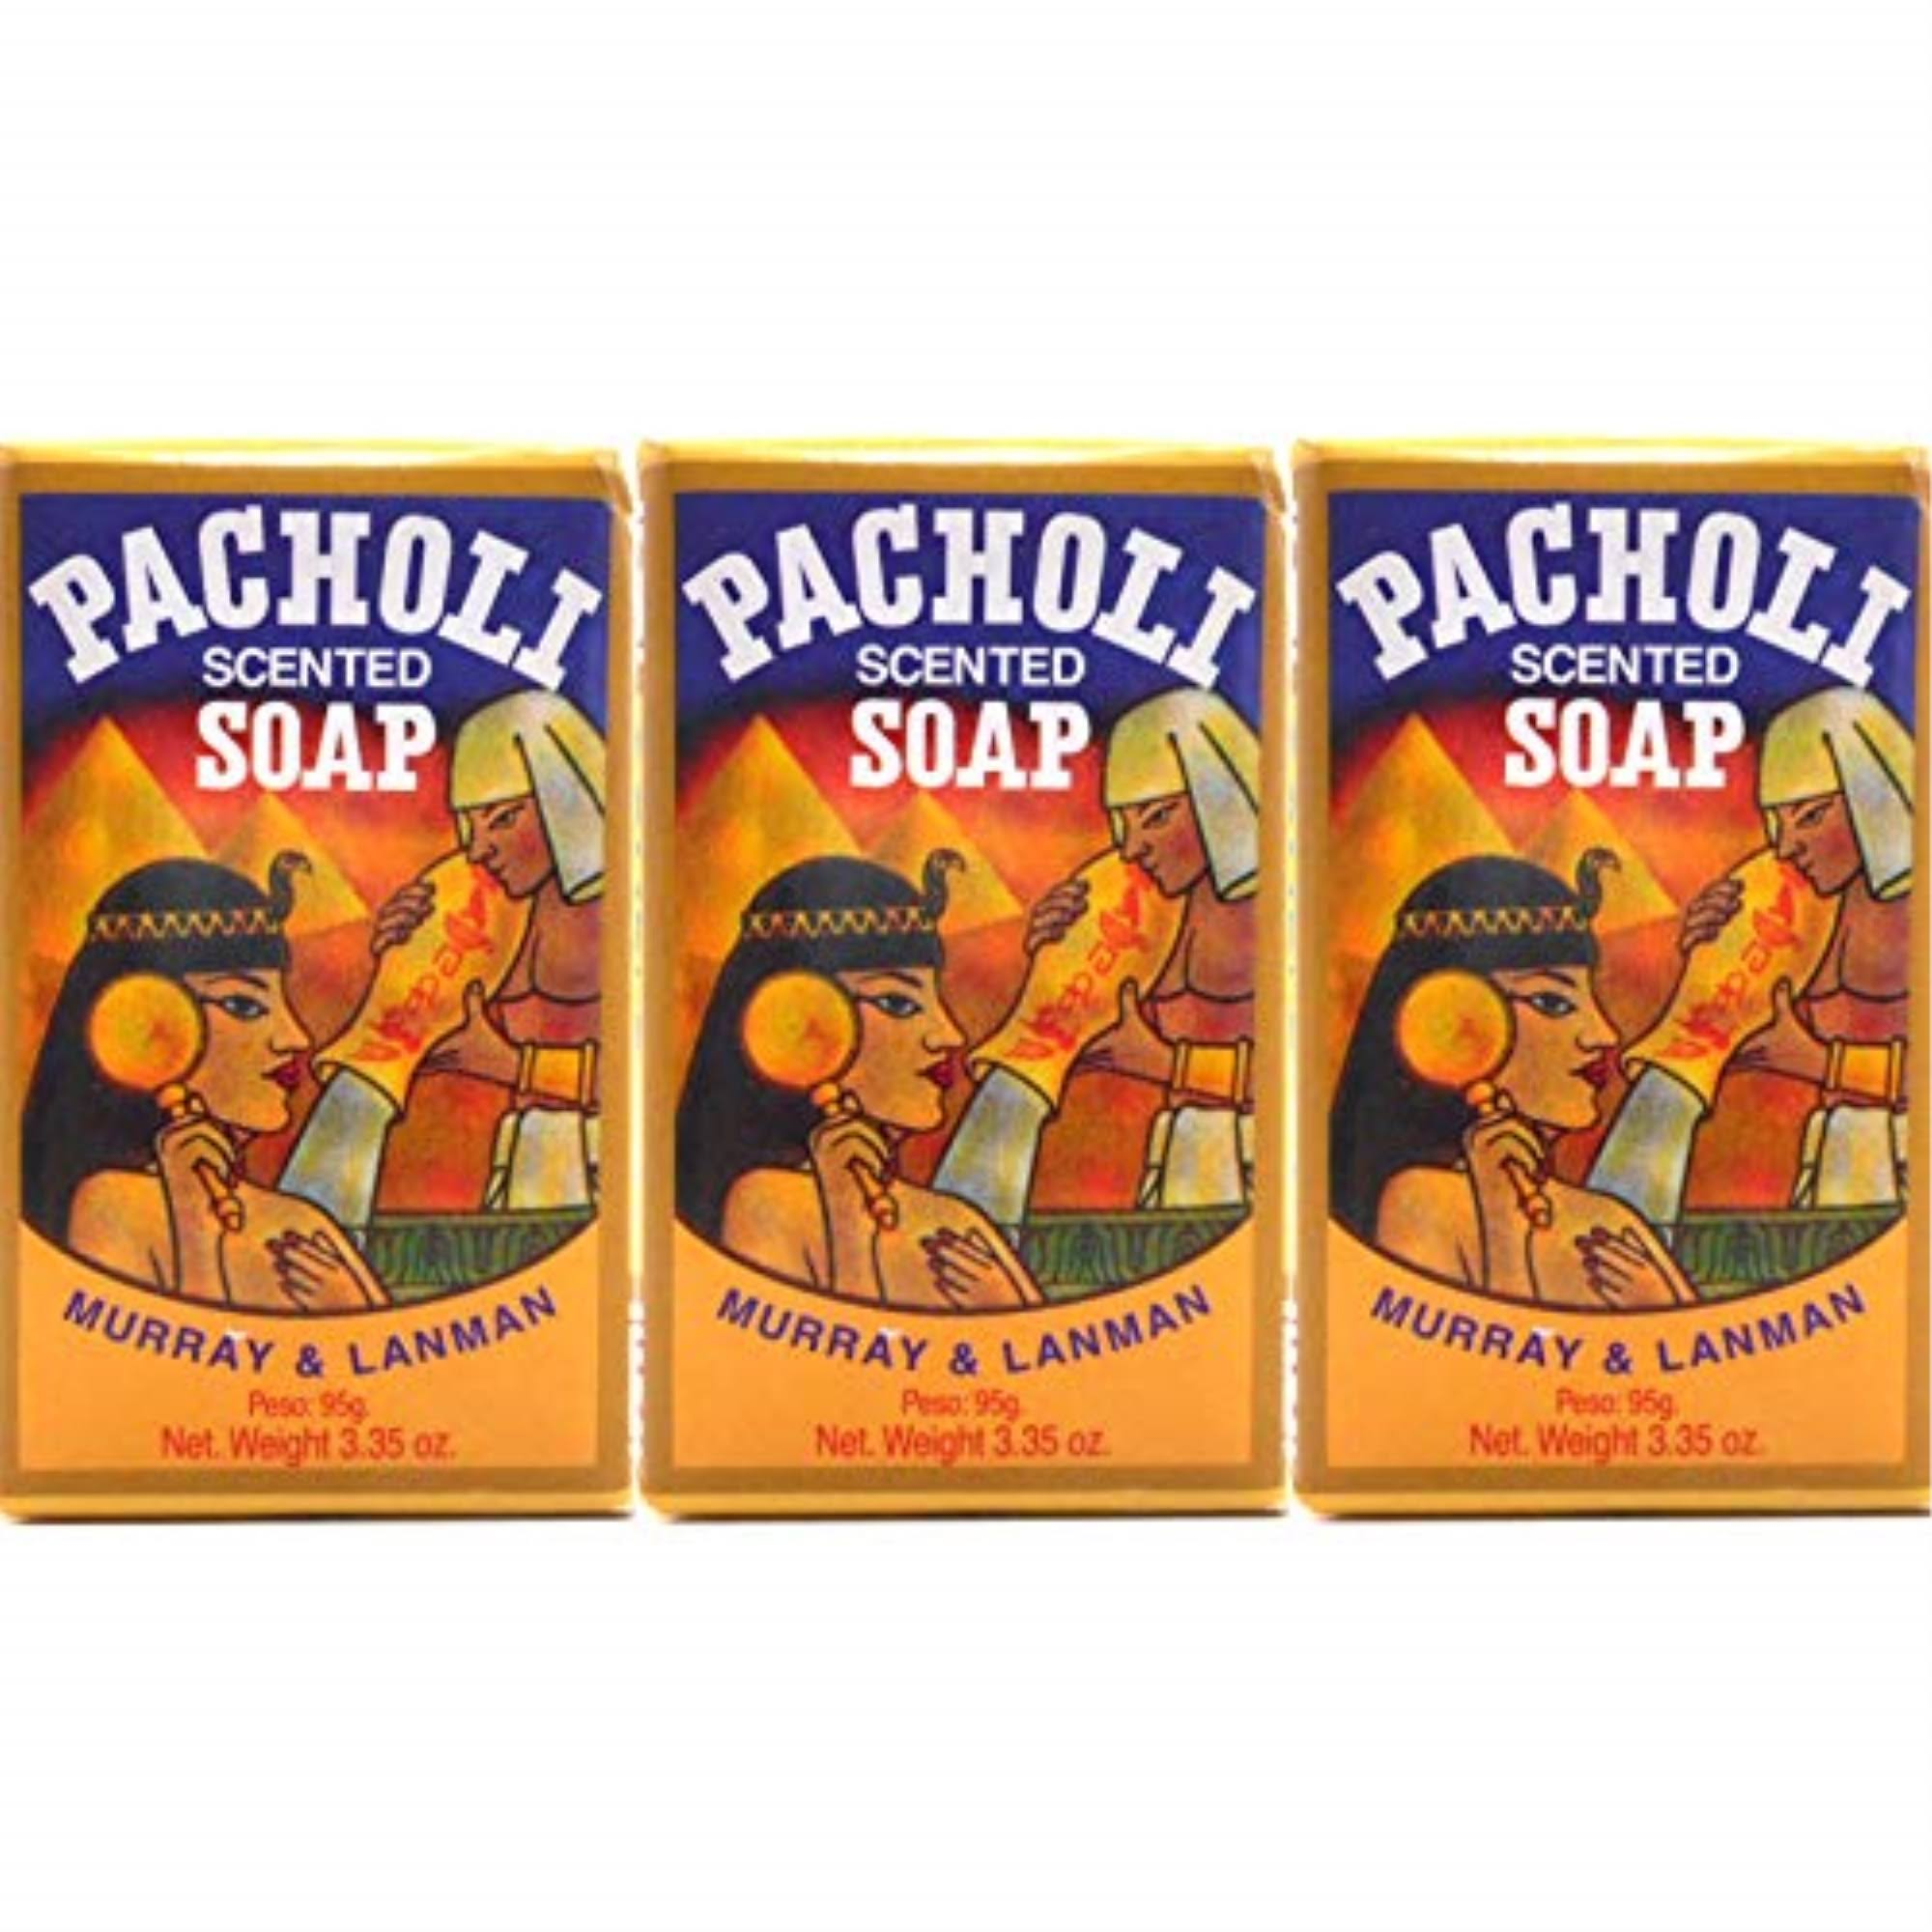 Murray and Lanman Pacholi Scented Soap - 3.35oz